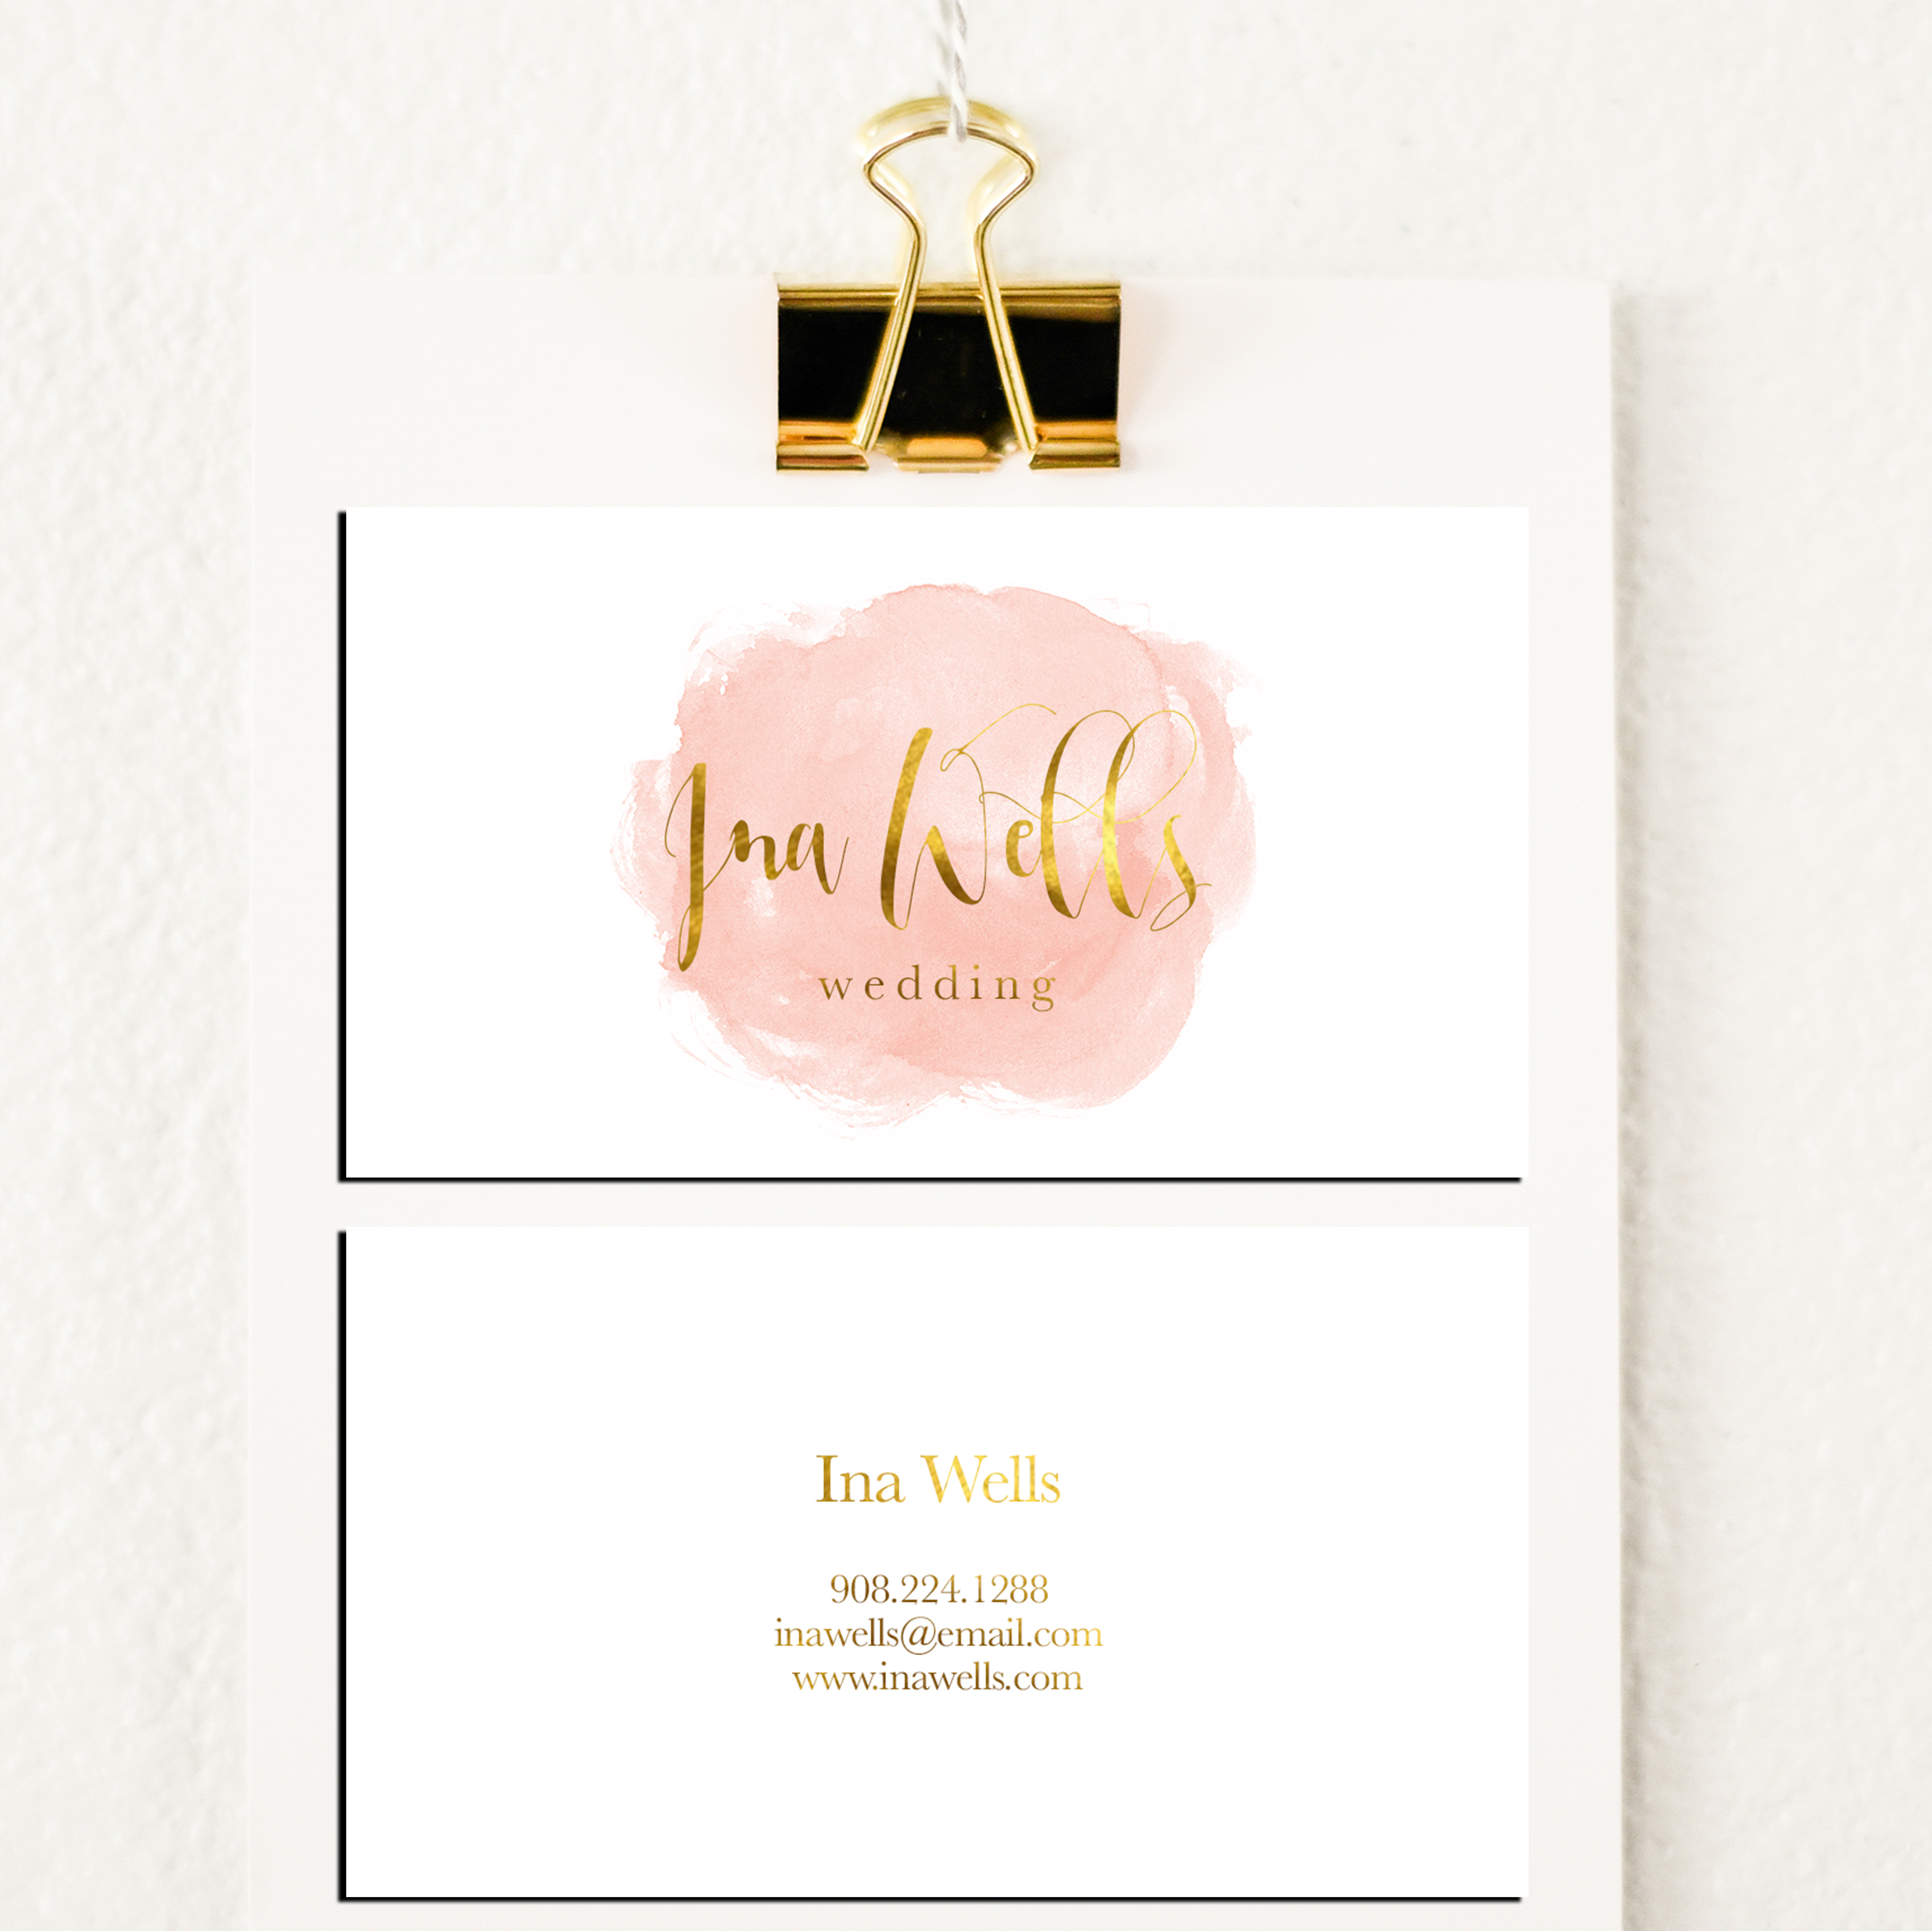 Watercolour wedding business card template inspiration - CardFaves